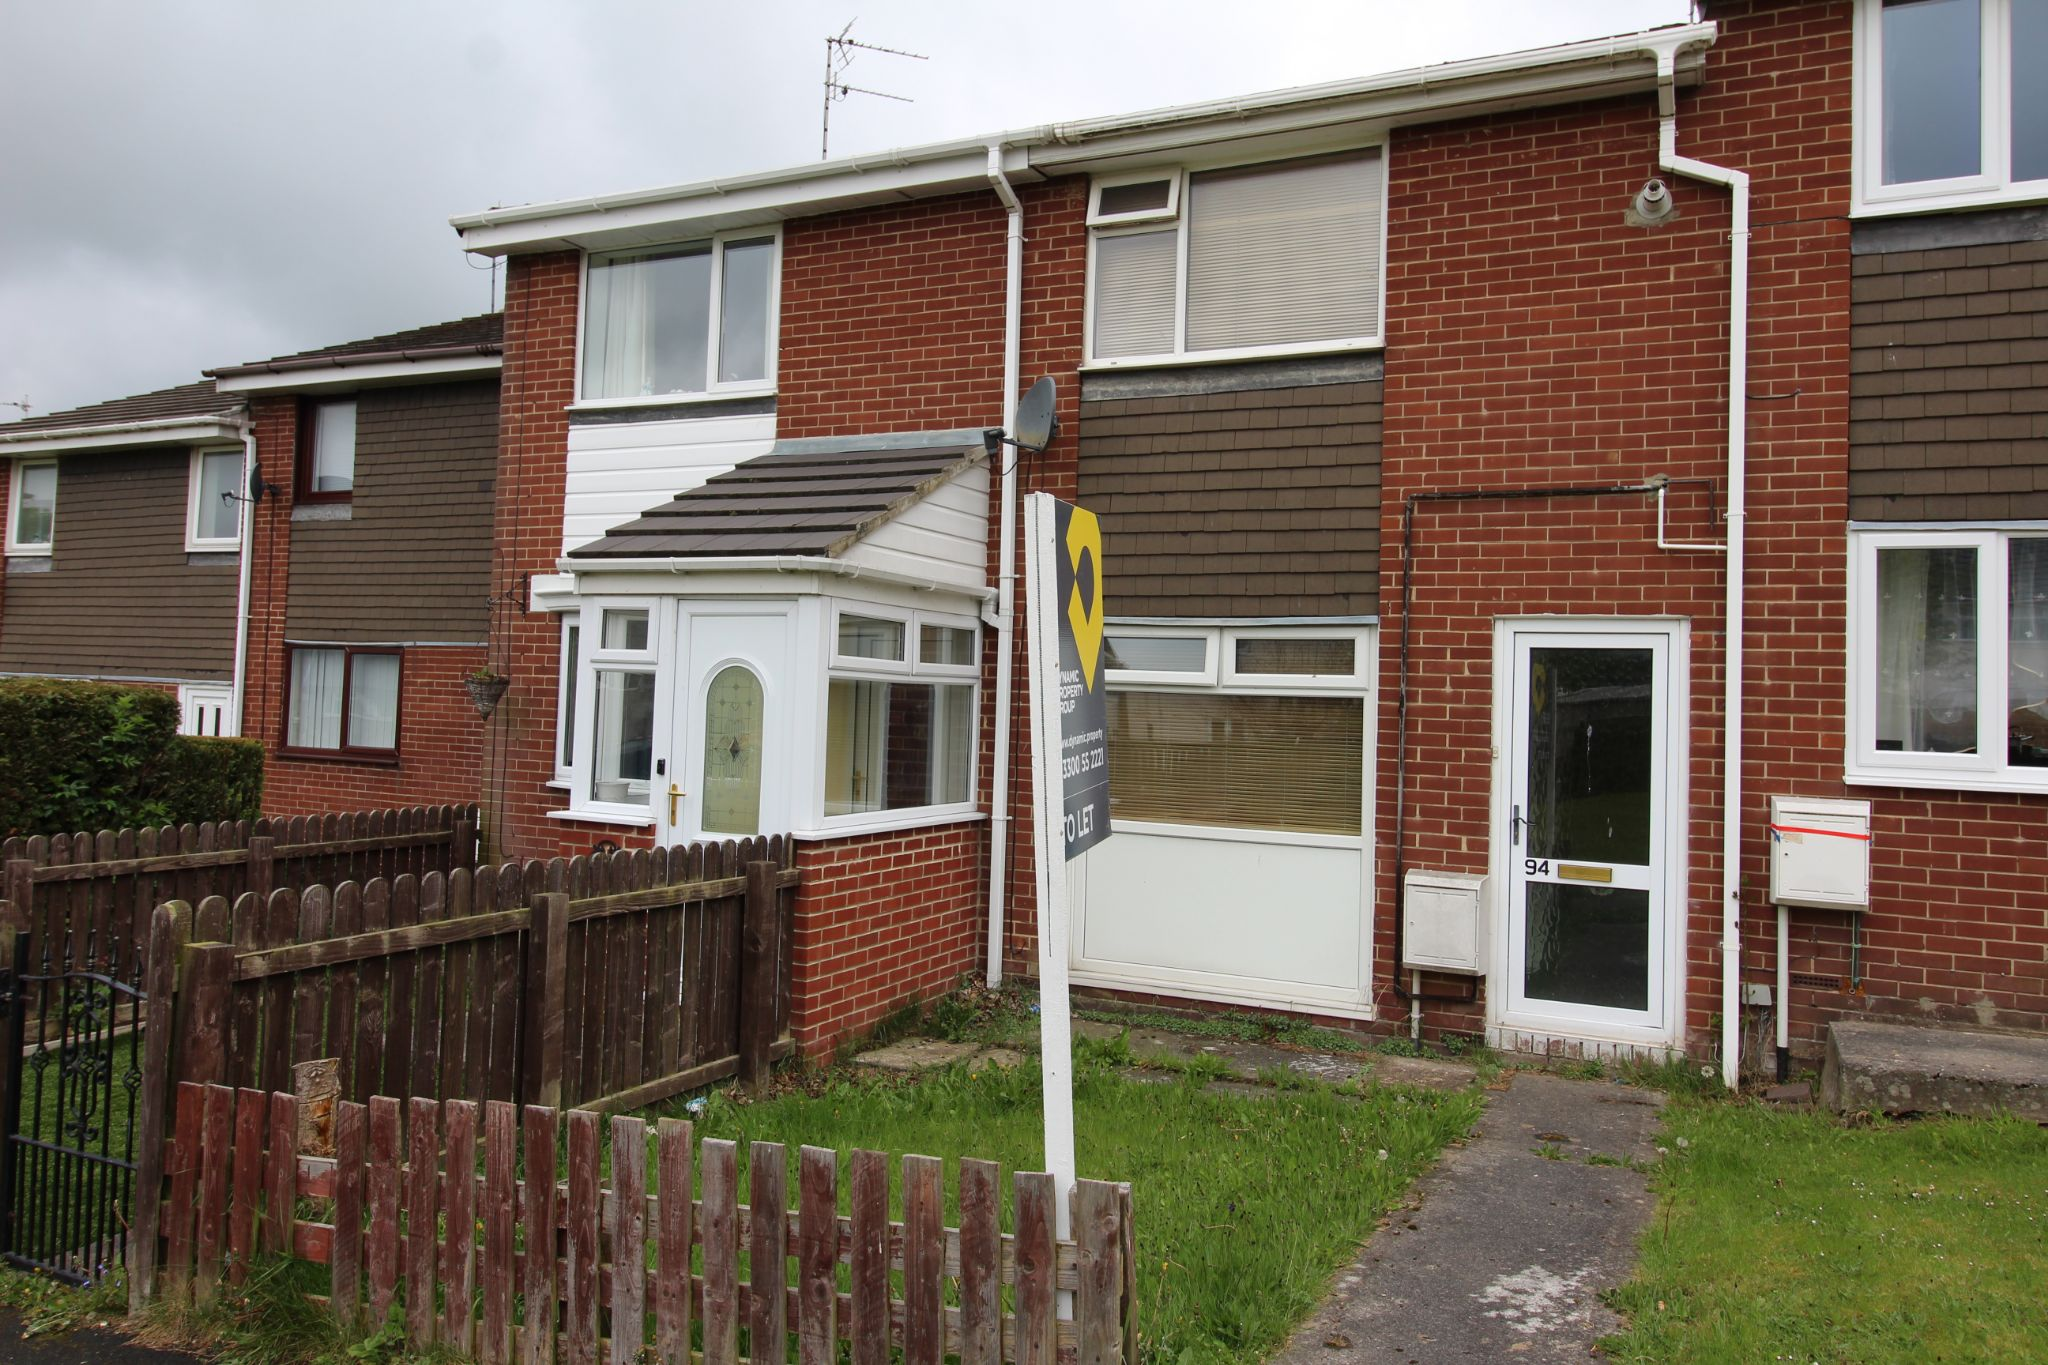 2 bedroom mid terraced house For Sale in Durham - Photograph 1.